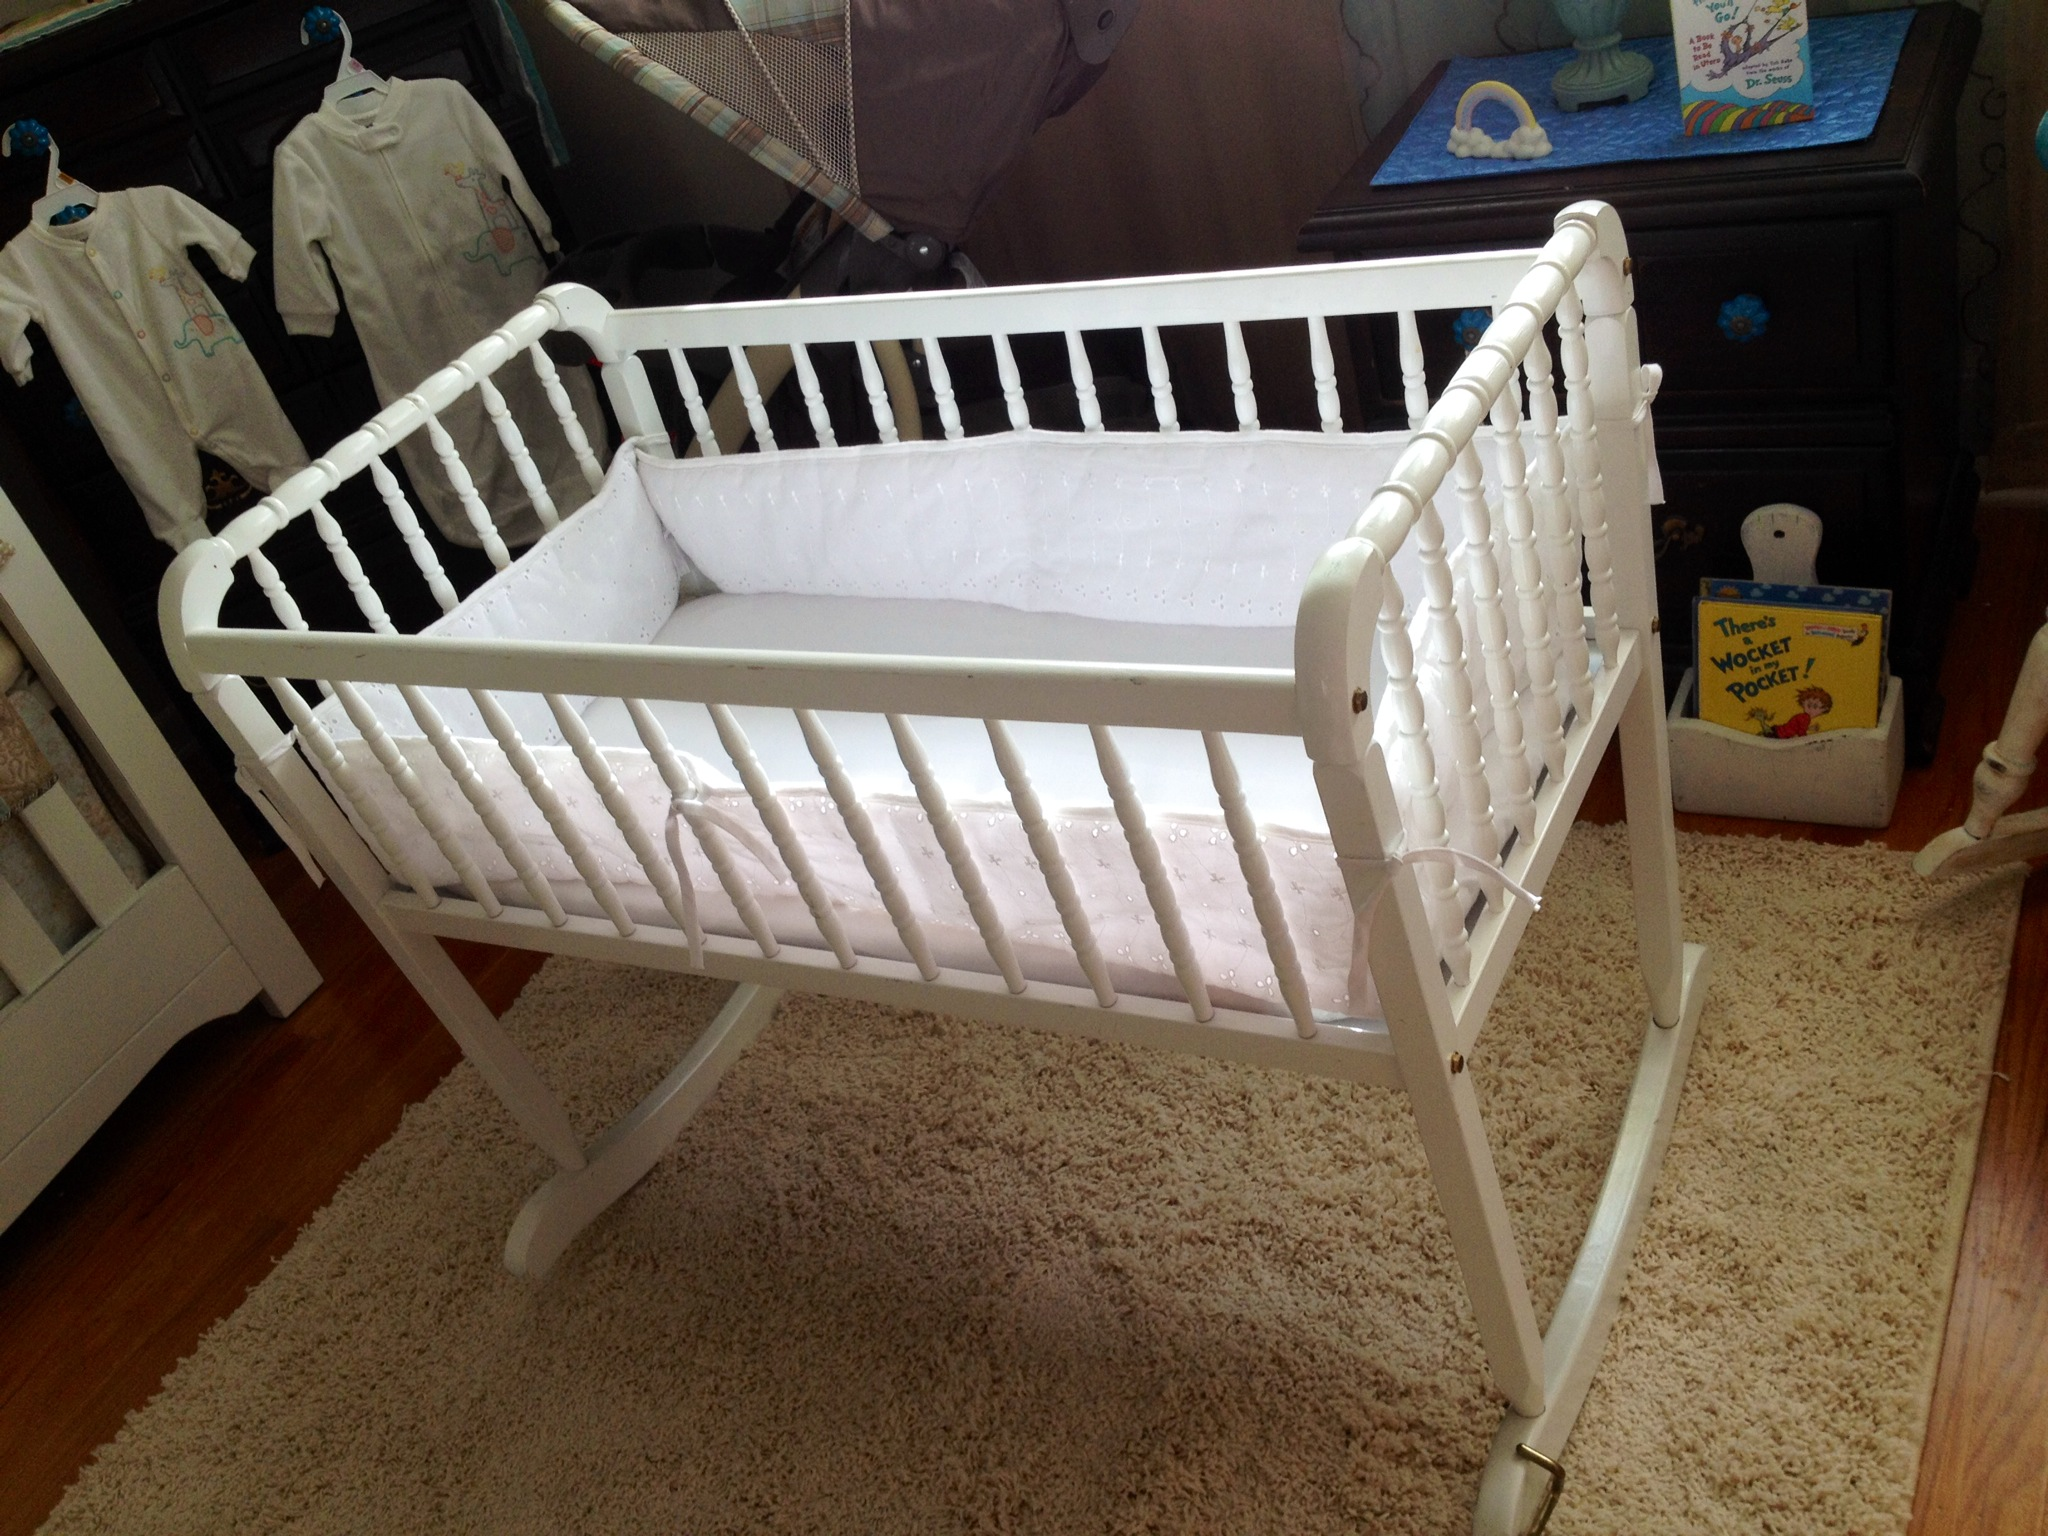 Iron crib for sale craigslist - Again I Adore This Vintage Style And It Is Extremely Similar To A Crib In Design And Feel Hopefully Easing The Transition Later On